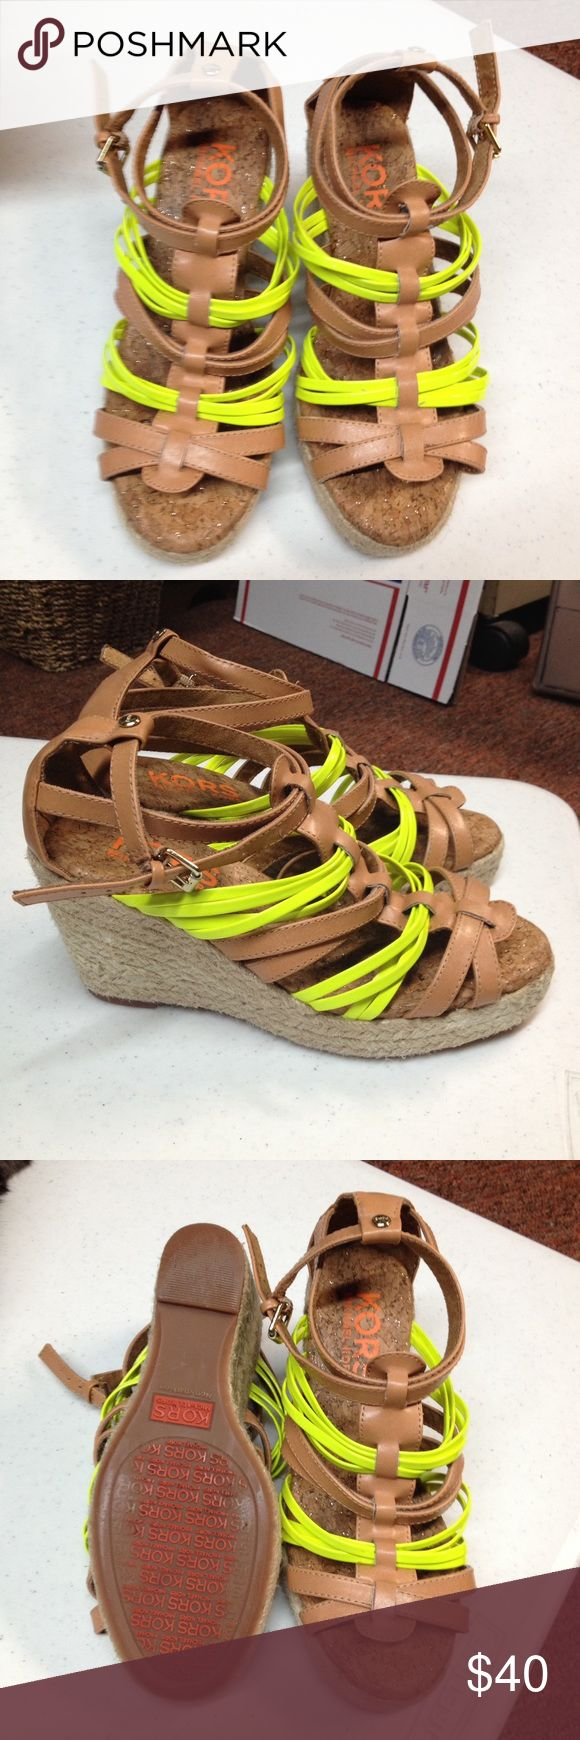 Michael Kors Strappy Wedges! Size 7 tan and yellow wedge heels by Michael Kors. Shoes are pre-loved but in very good condition. Minimal wear. KORS Michael Kors Shoes Wedges